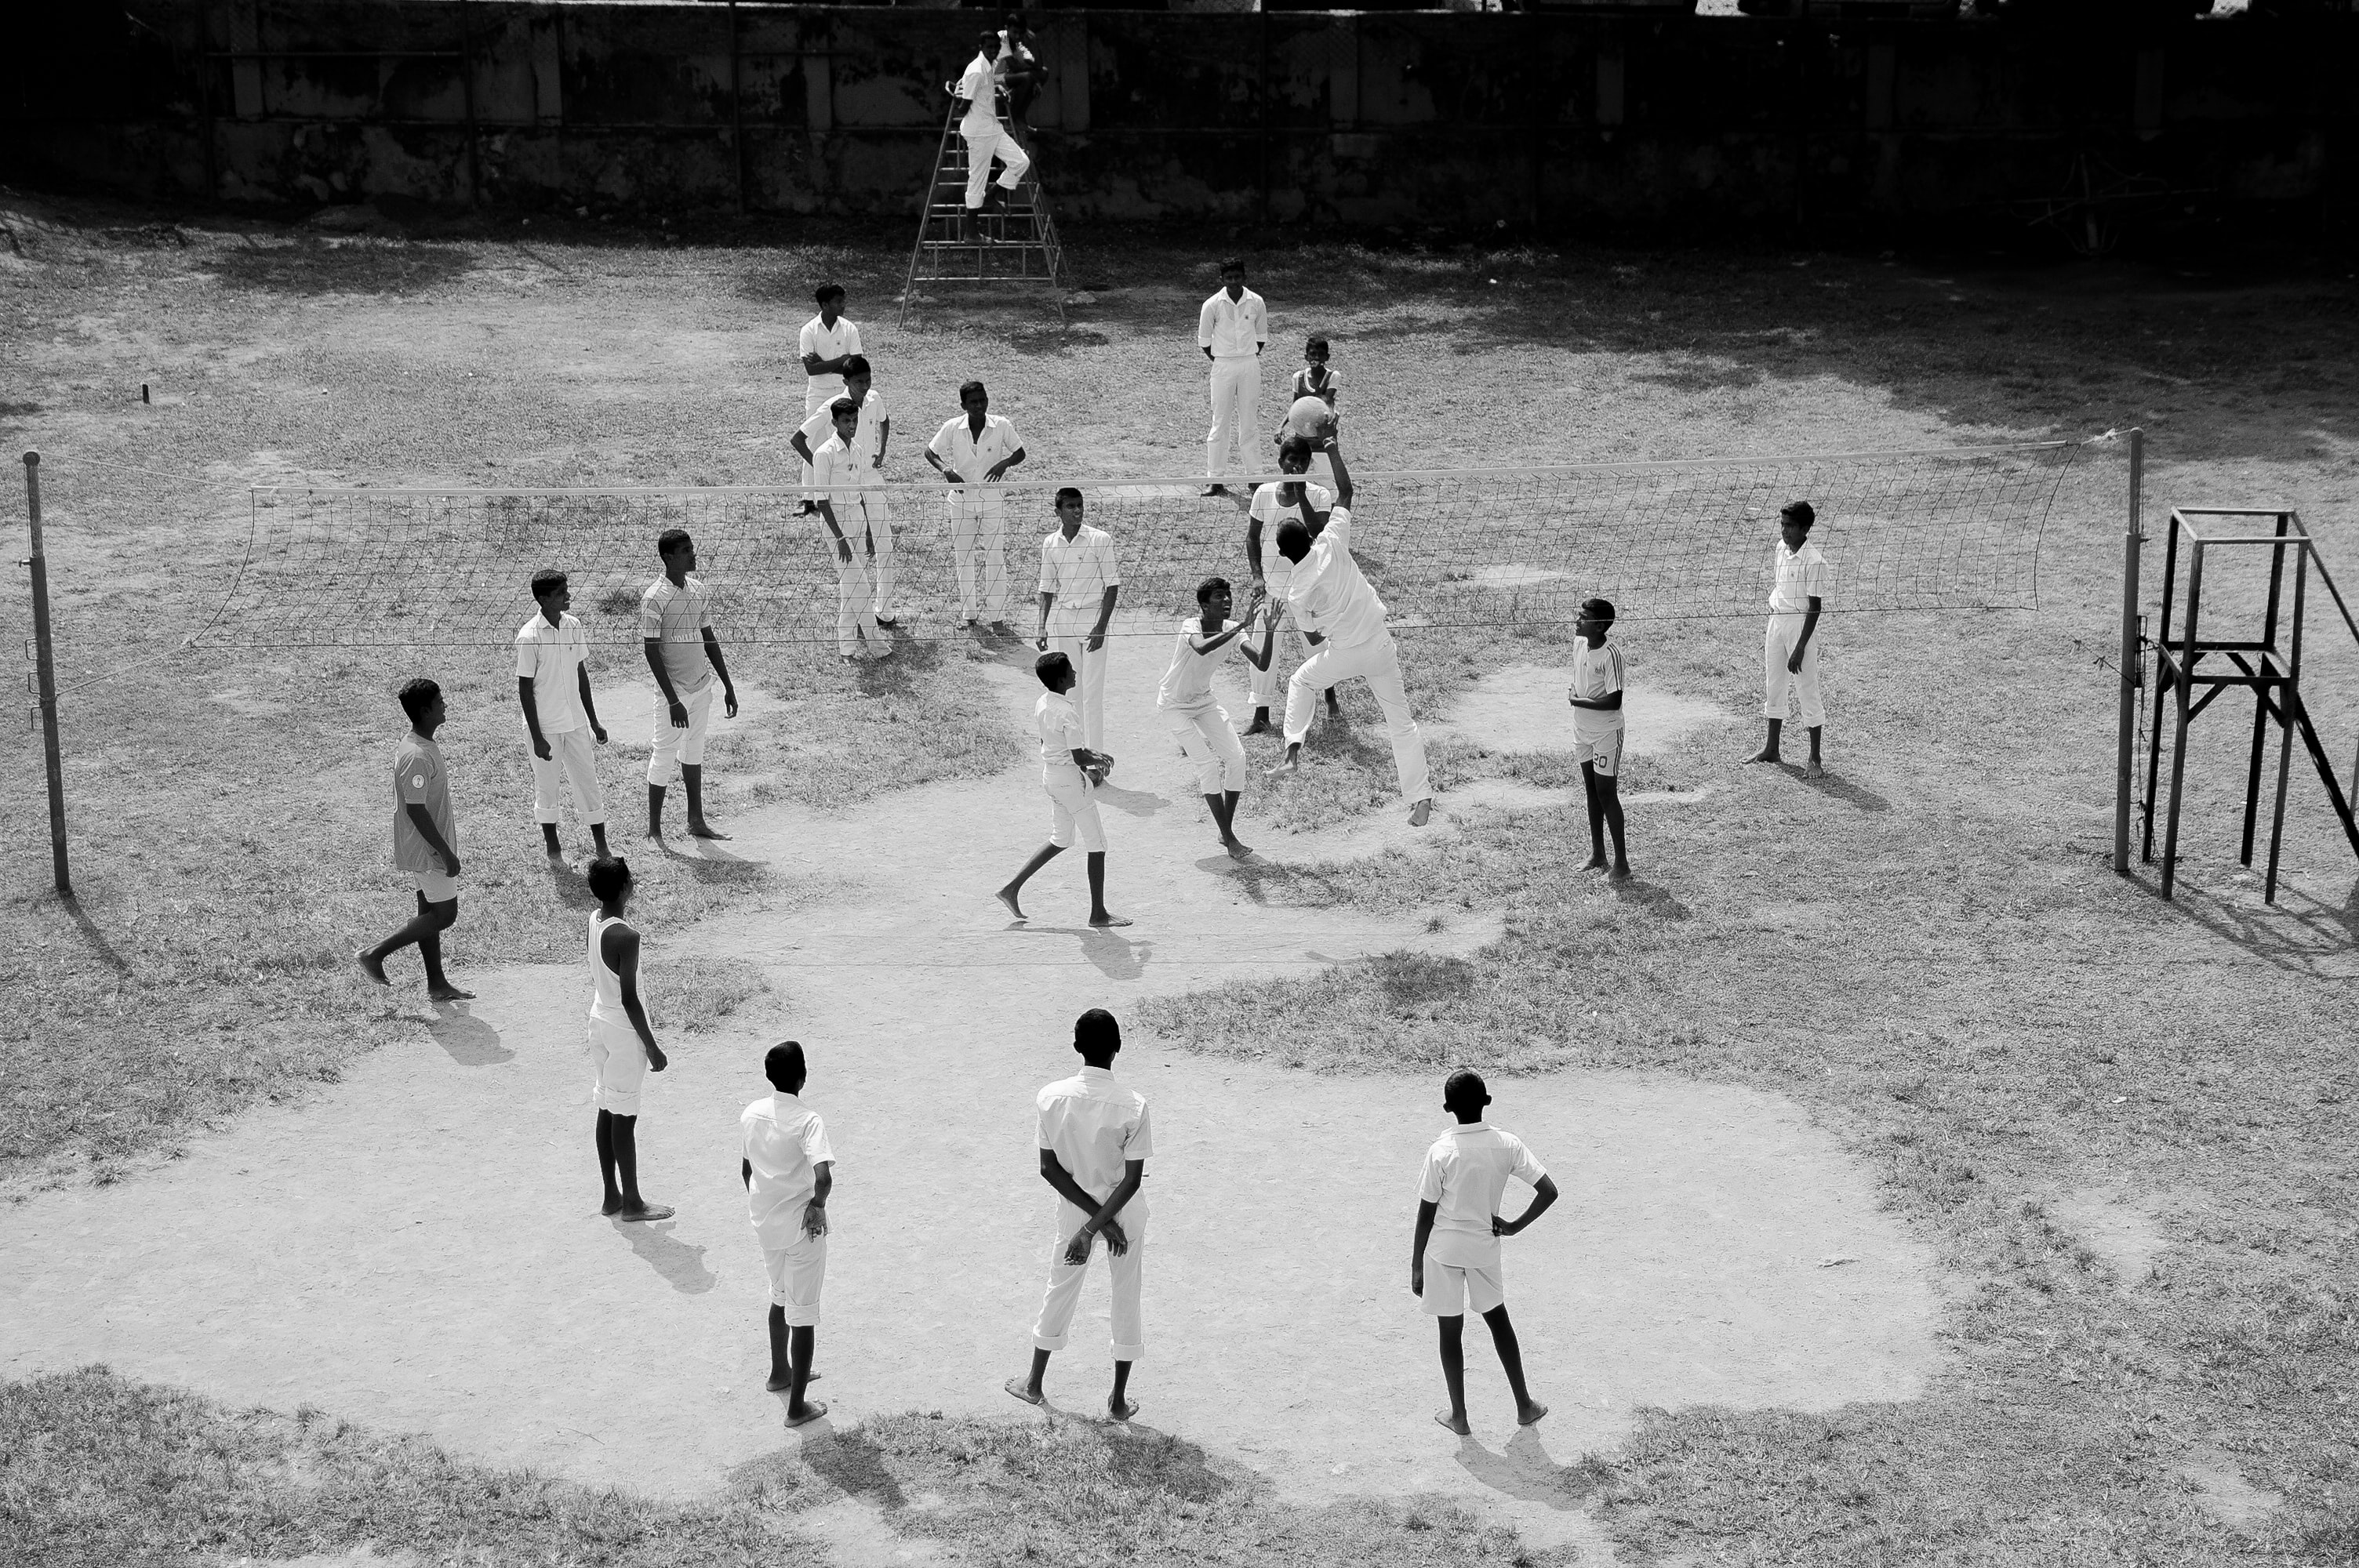 Black and white shot of people playing volleyball in white uniforms on dusty ground, Sri Lanka